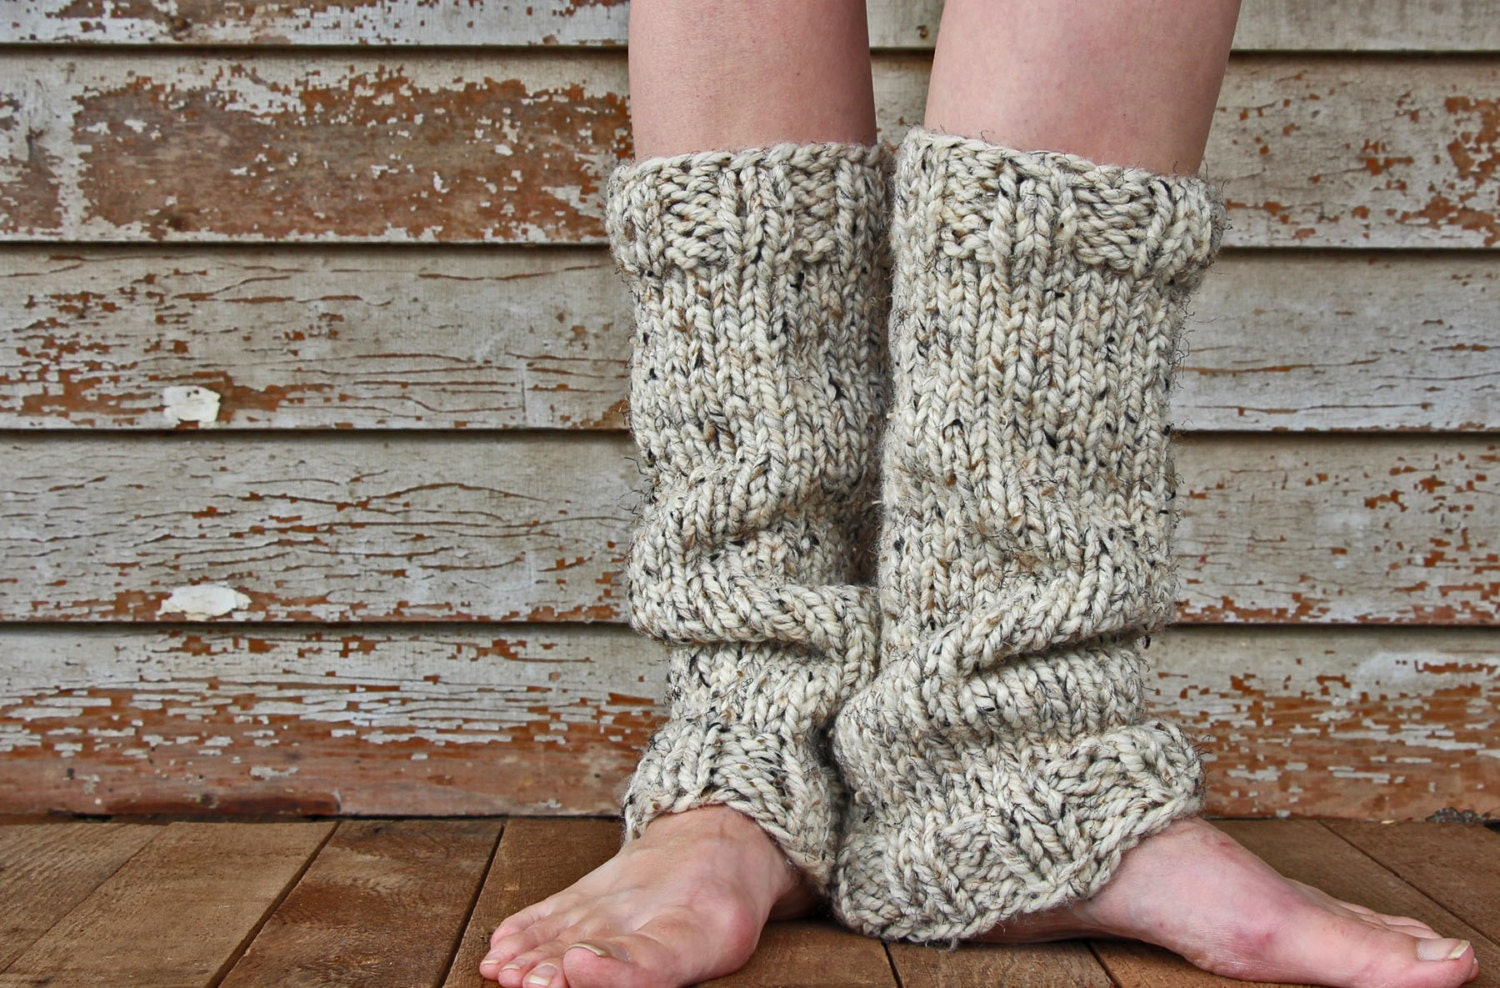 Knitting Leg Warmers Pattern : Womens Leg Warmers Knitting Pattern STRENGTH a set of